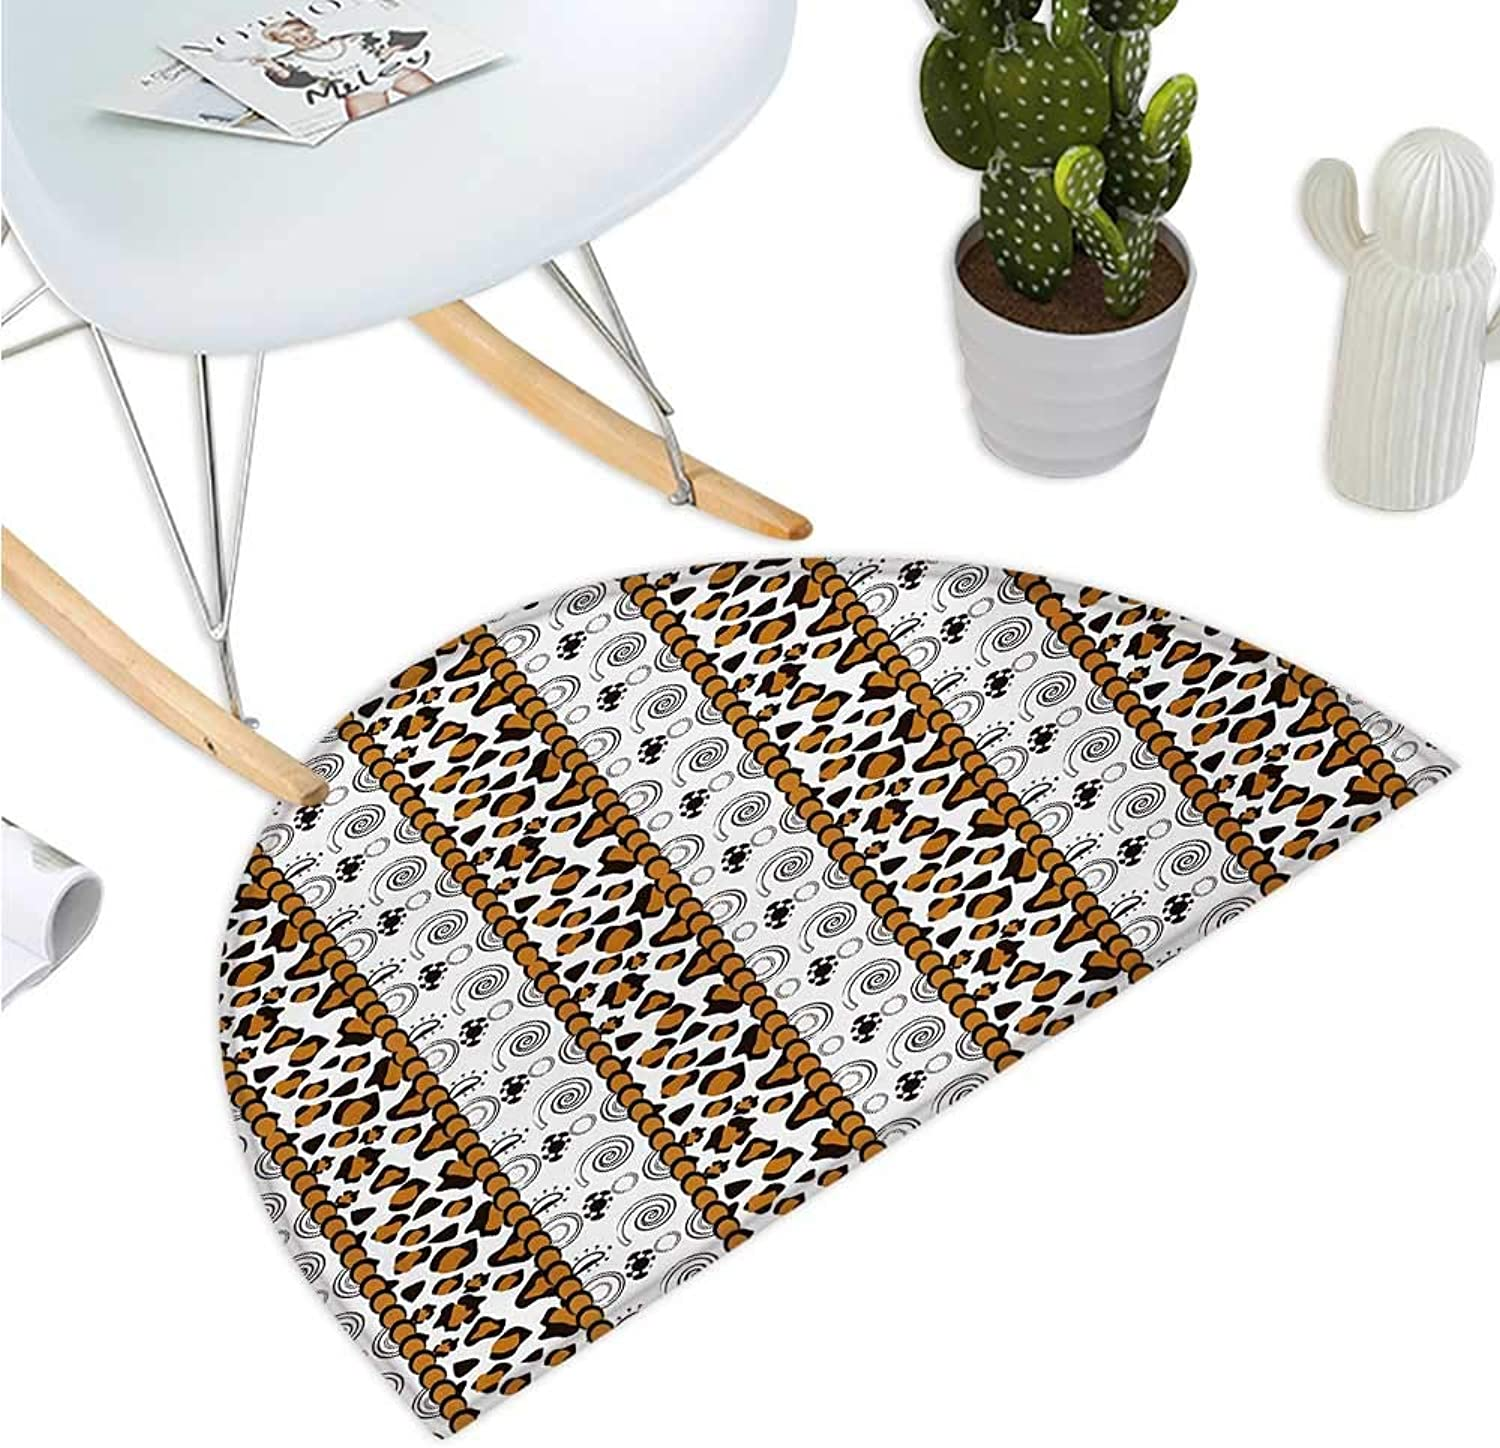 Zambia Semicircular Cushion Cheetah Leopard Skin Pattern with Wildlife Featured Spirals Illustration Halfmoon doormats H 39.3  xD 59  Amber Brown White